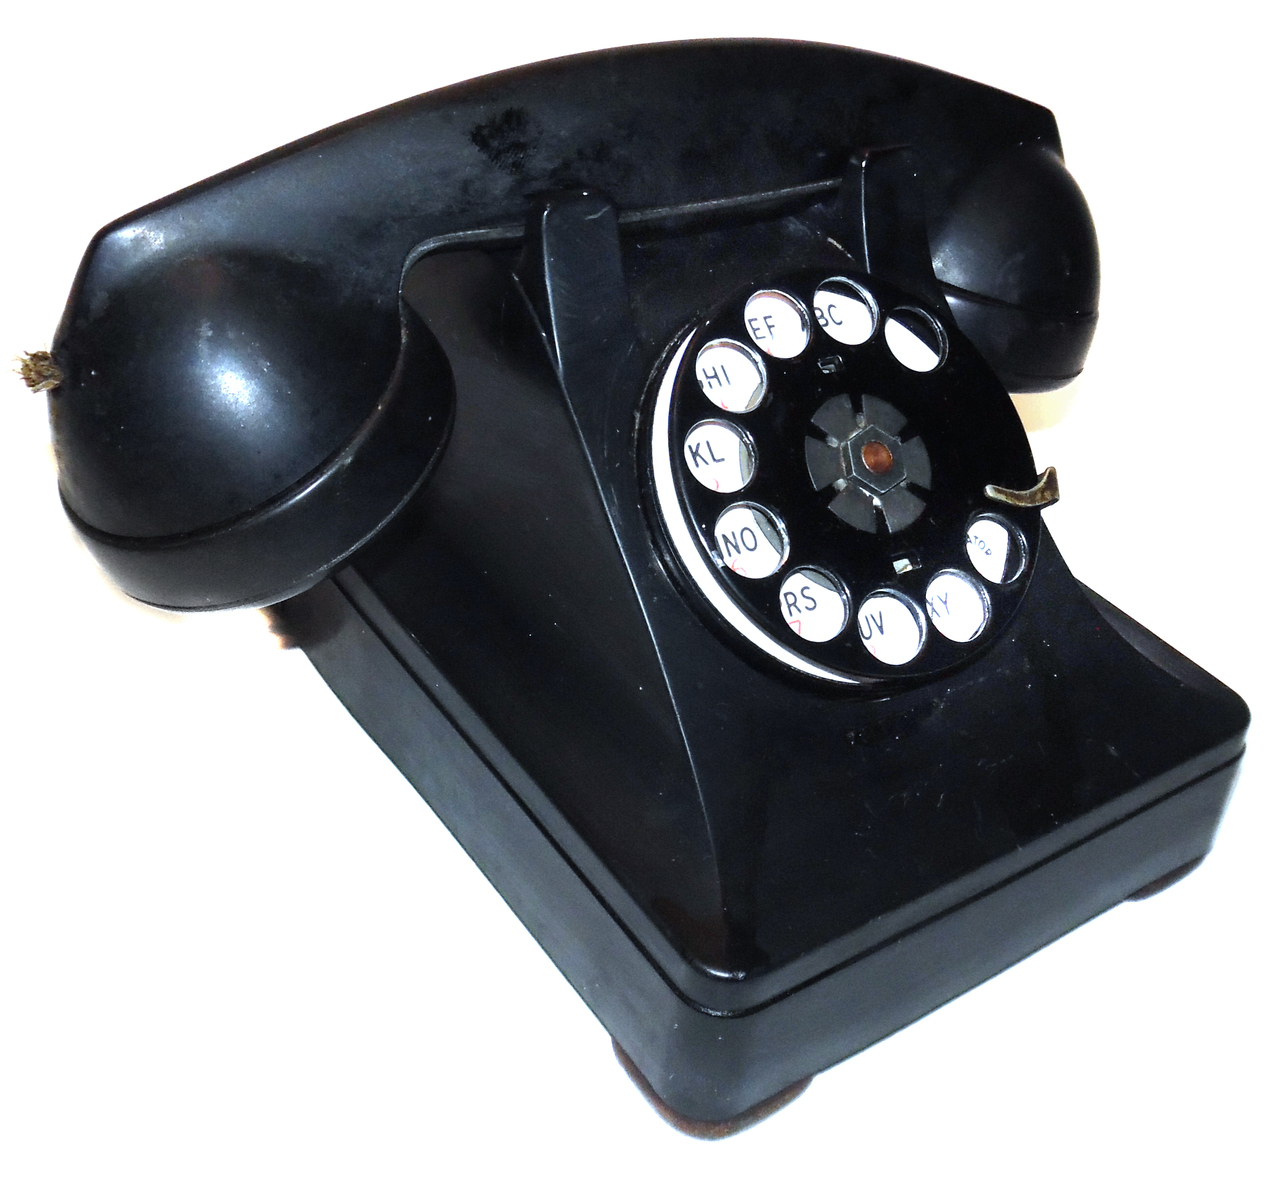 hight resolution of details about vintage western electric model 302 rotary dial desk telephone with f1w handset